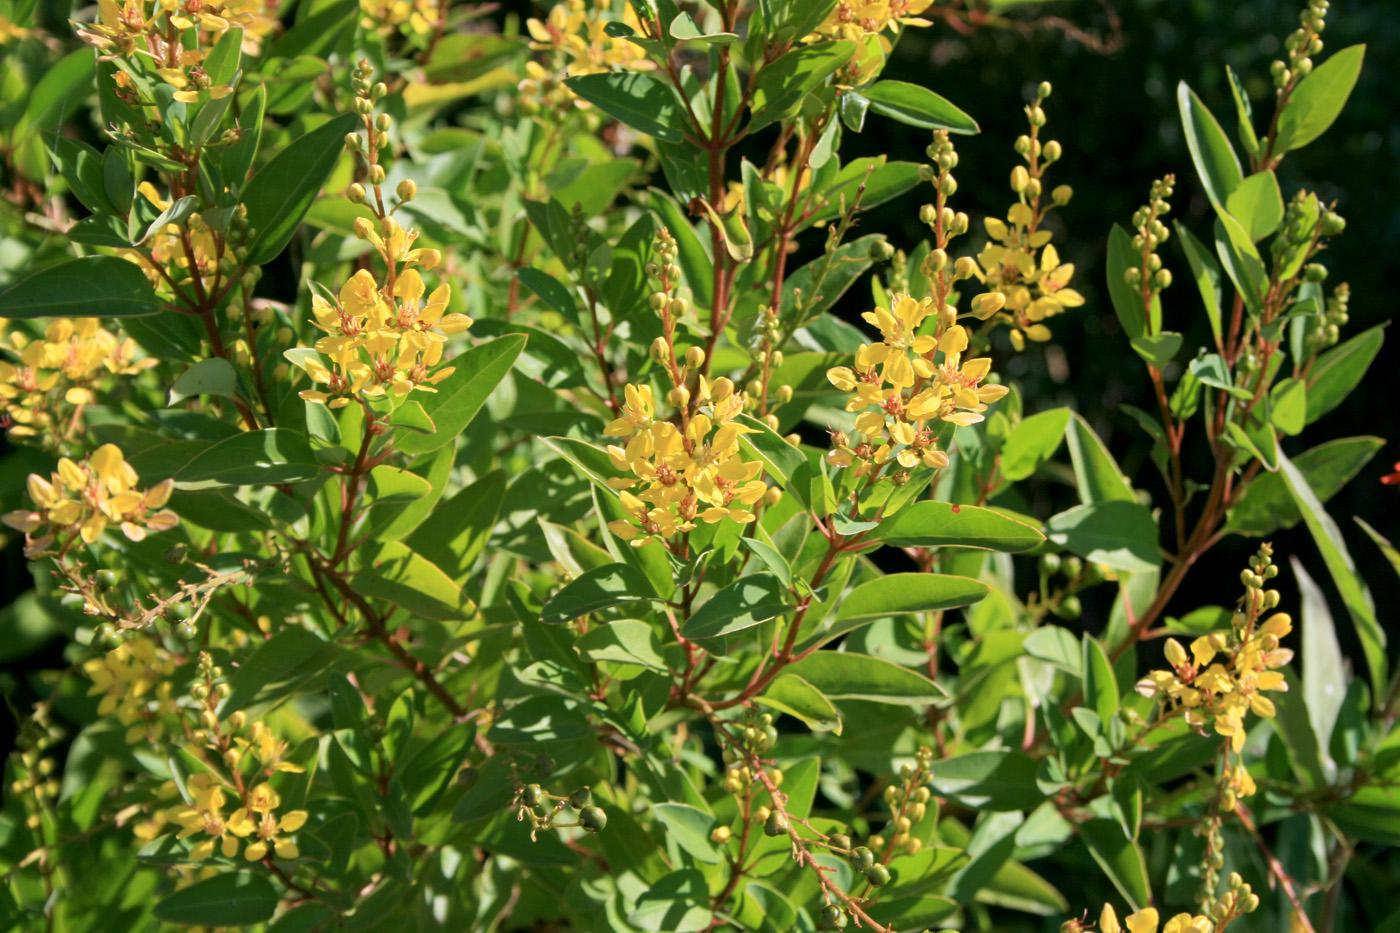 Golden Thryallis has bright, cheery clusters of yellow flowers that bloom from early June through the fall. Rusty reddish-brown branches provide a nice background for the flowers. The plant performs best in full sun. (Photo by Gary Bachman)